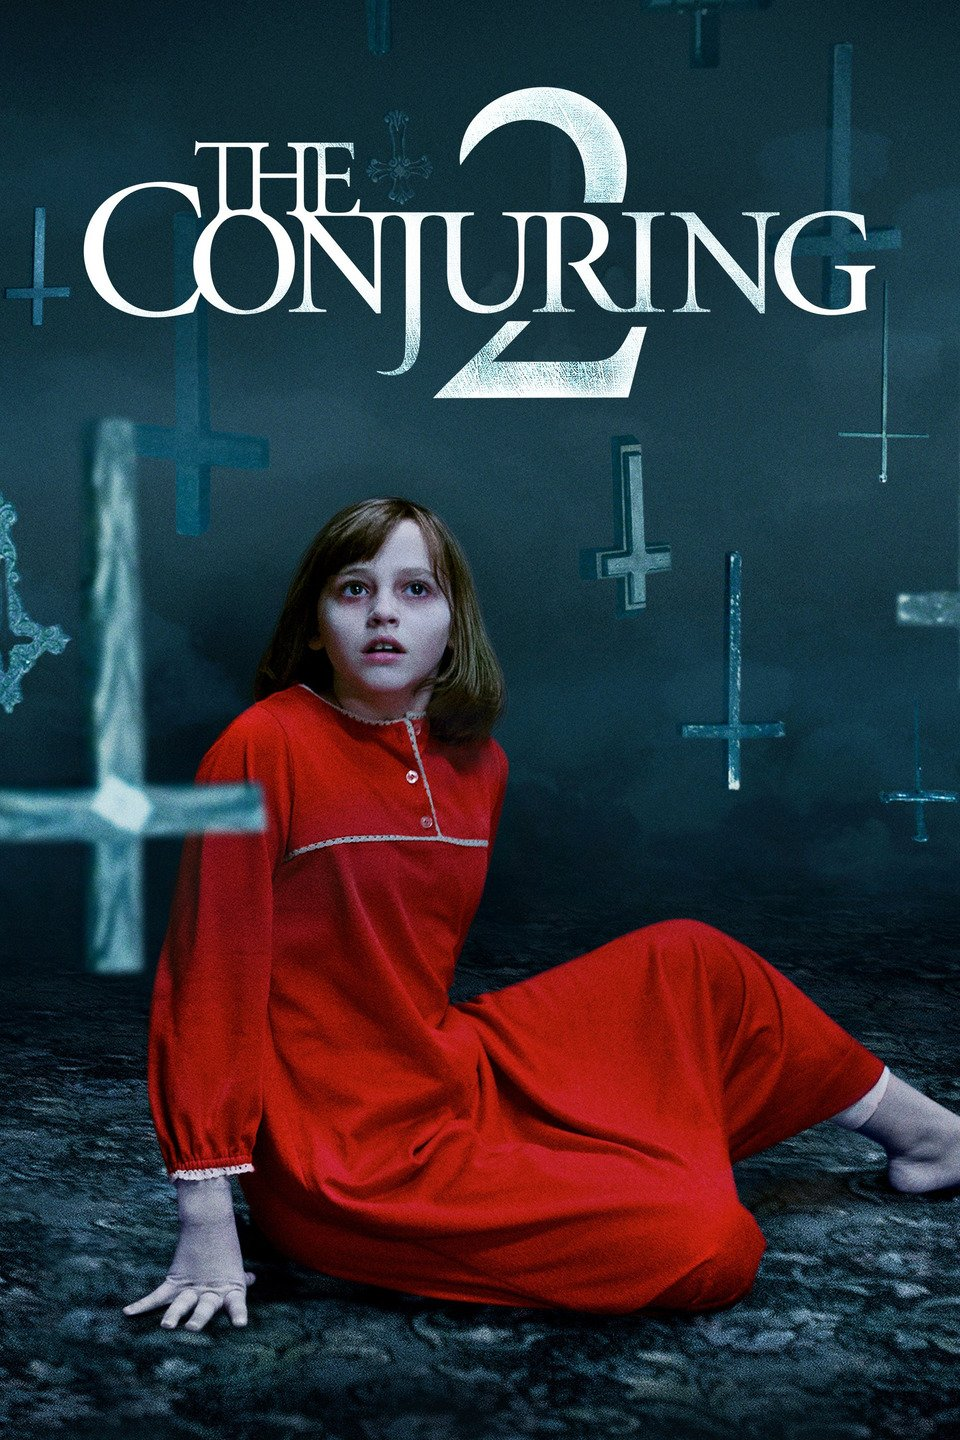 conjuring 2 full movie download in english 480p